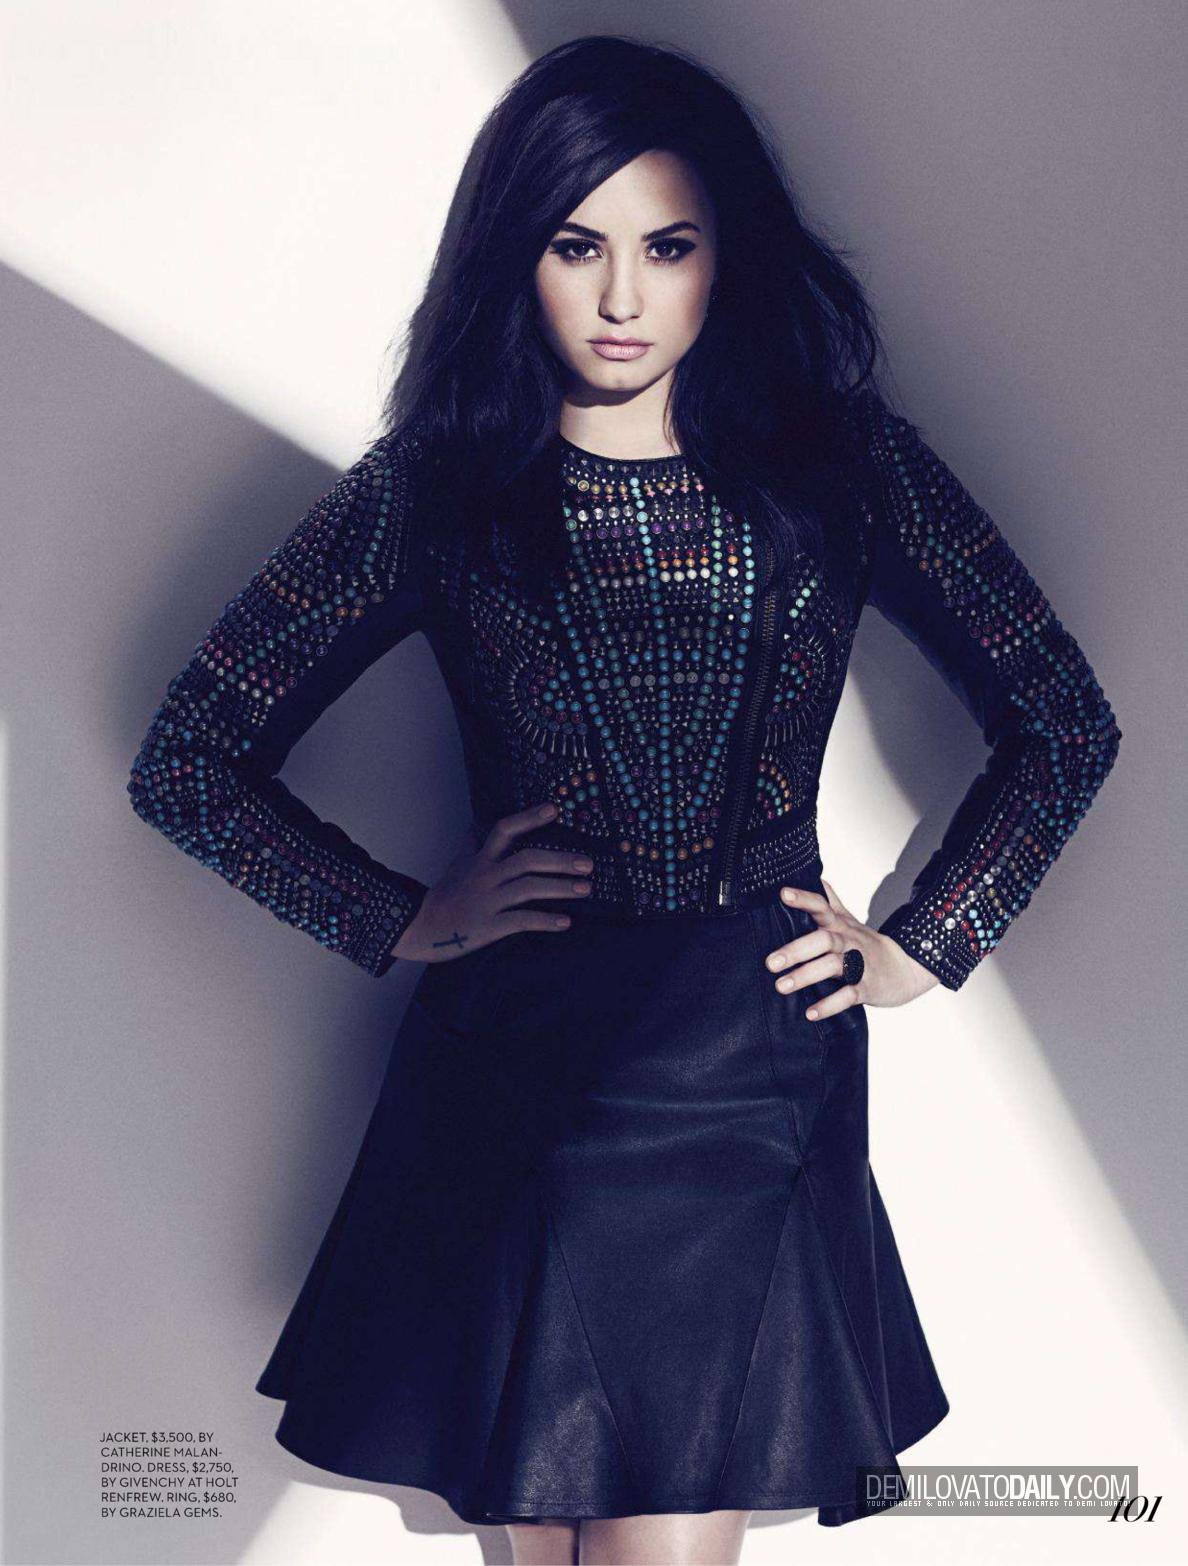 demi magazine scans 2013 fashion august 2013 demi